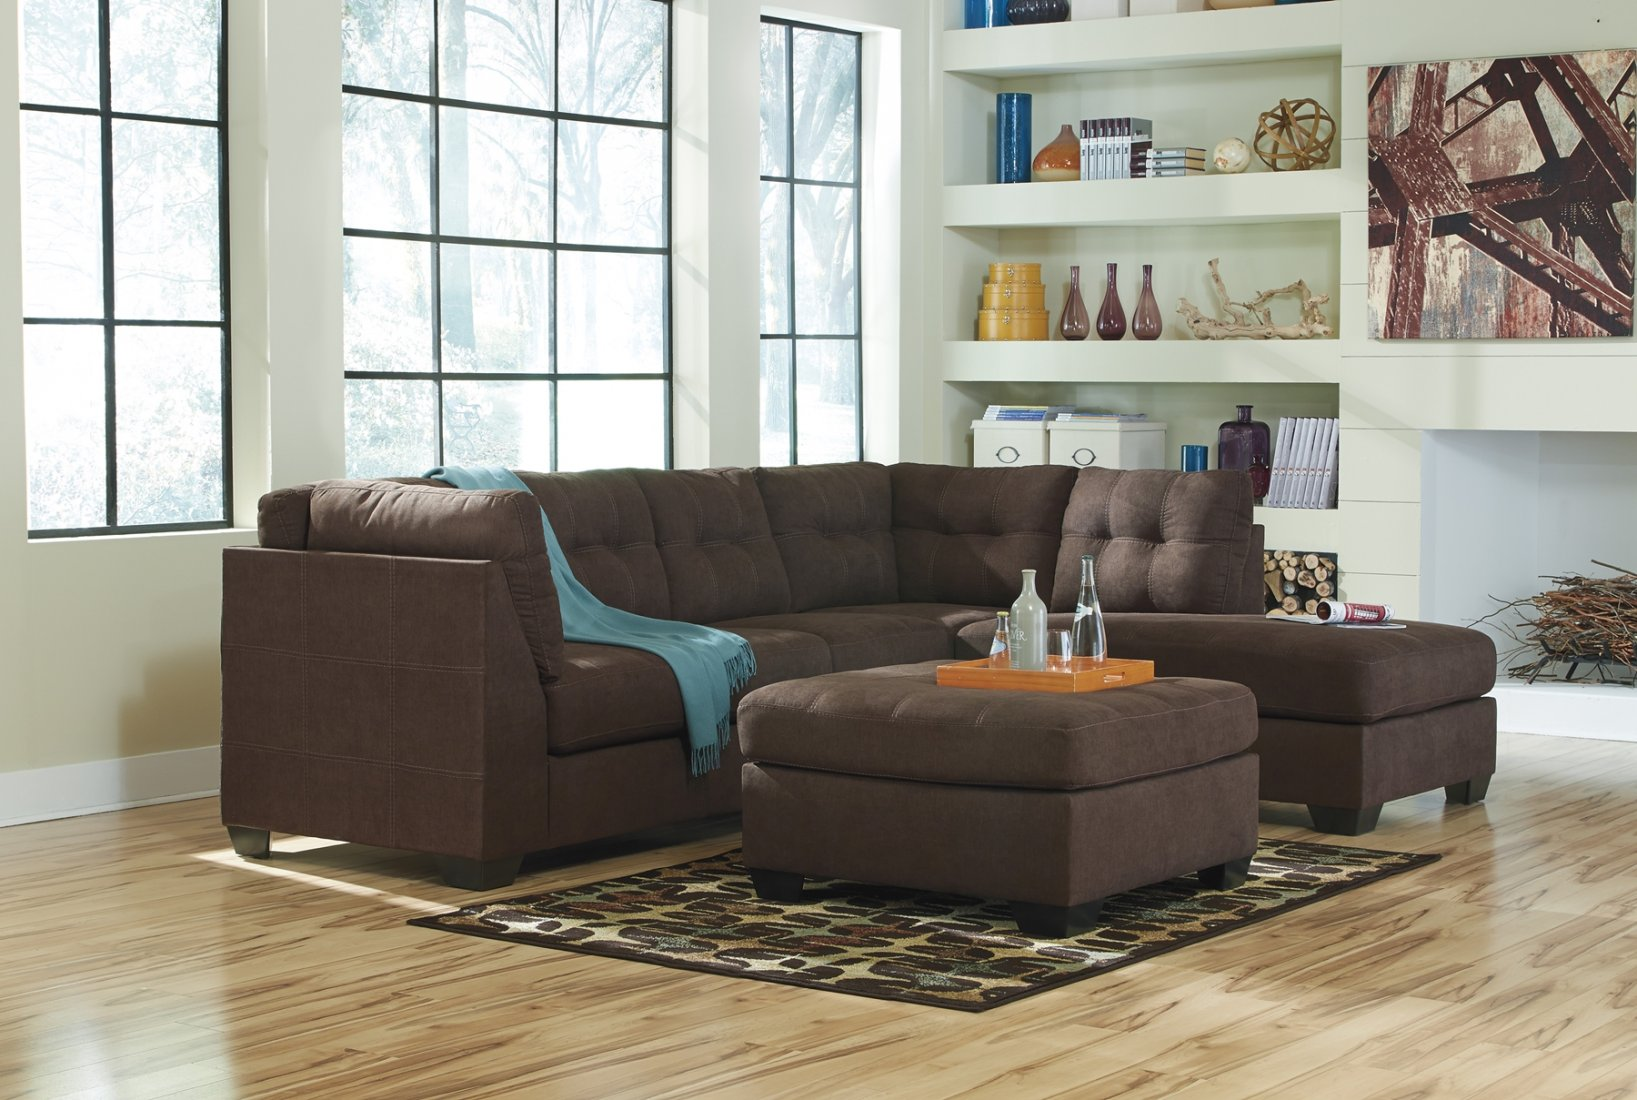 45201 Maier Walnut - Click Image to Close